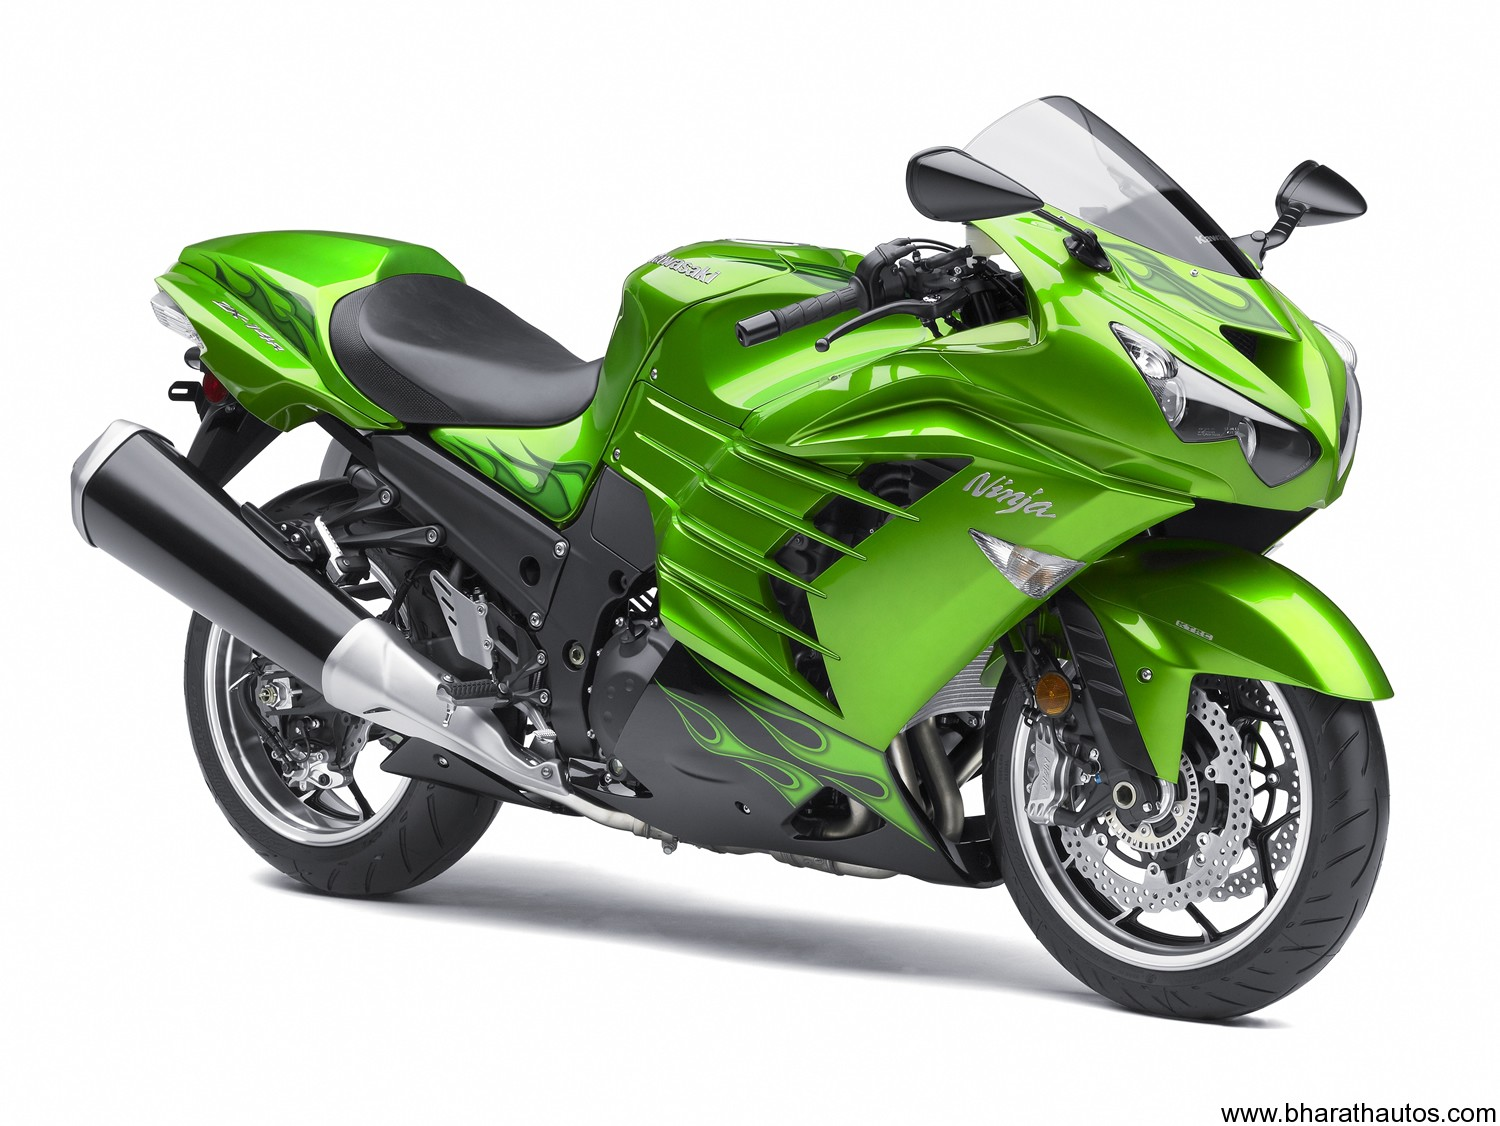 2012 Kawasaki ZZR1400 is the world's fastest motorcycle - Bharath ...